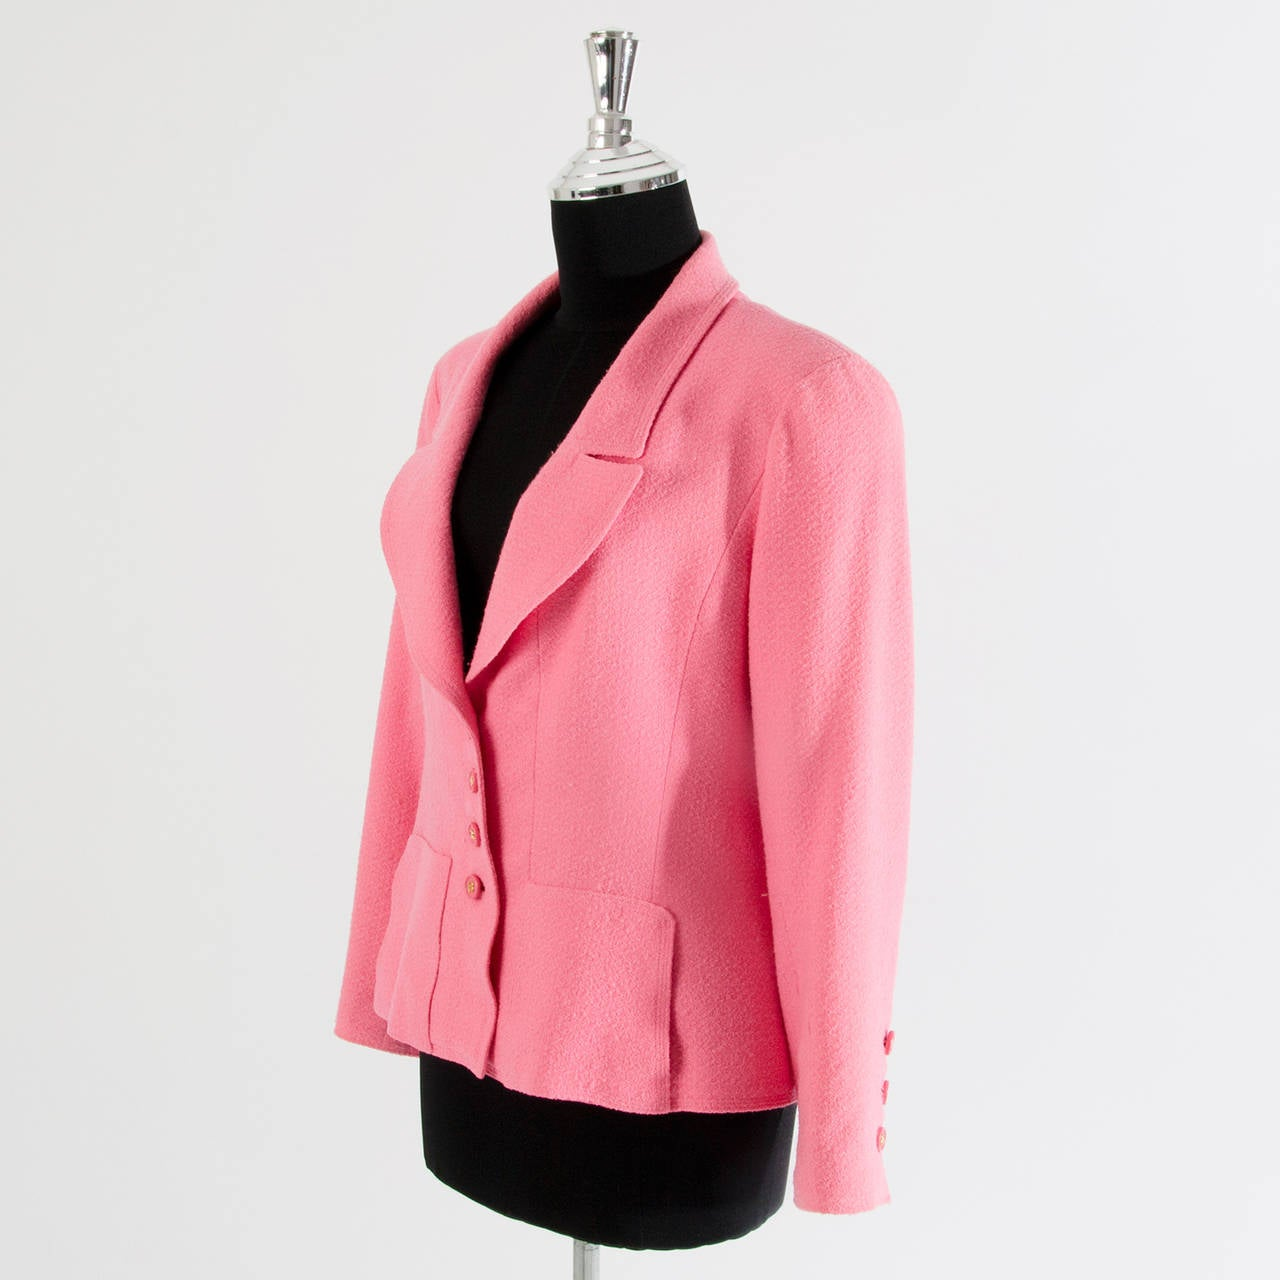 Chanel Pink Bouclé Blazer For Sale at 1stdibs